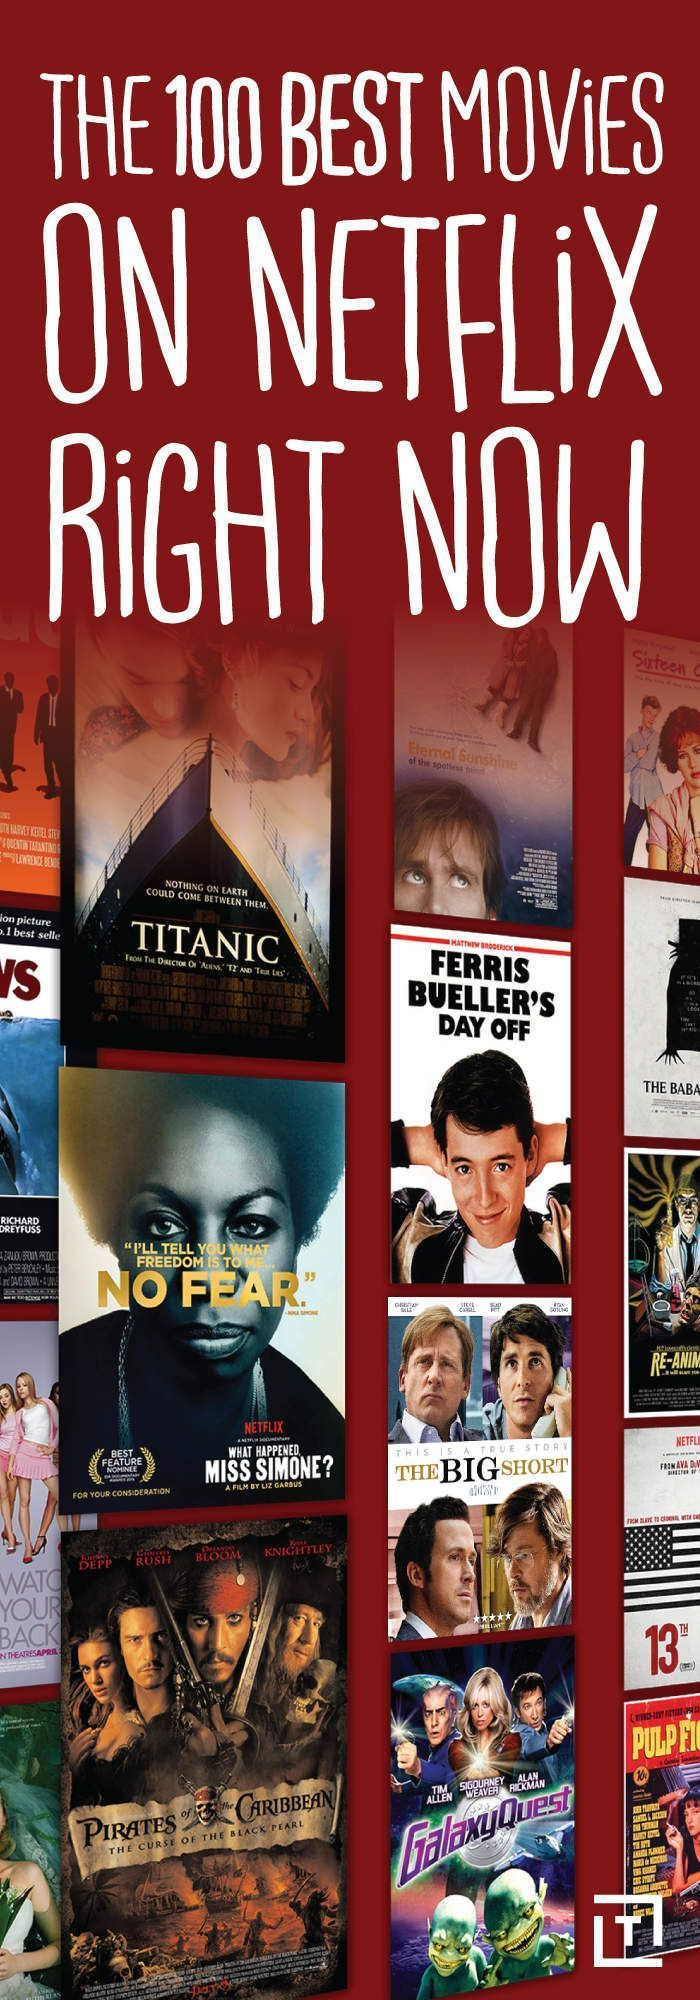 The 100 Best Movies on Netflix Right Now Good movies on